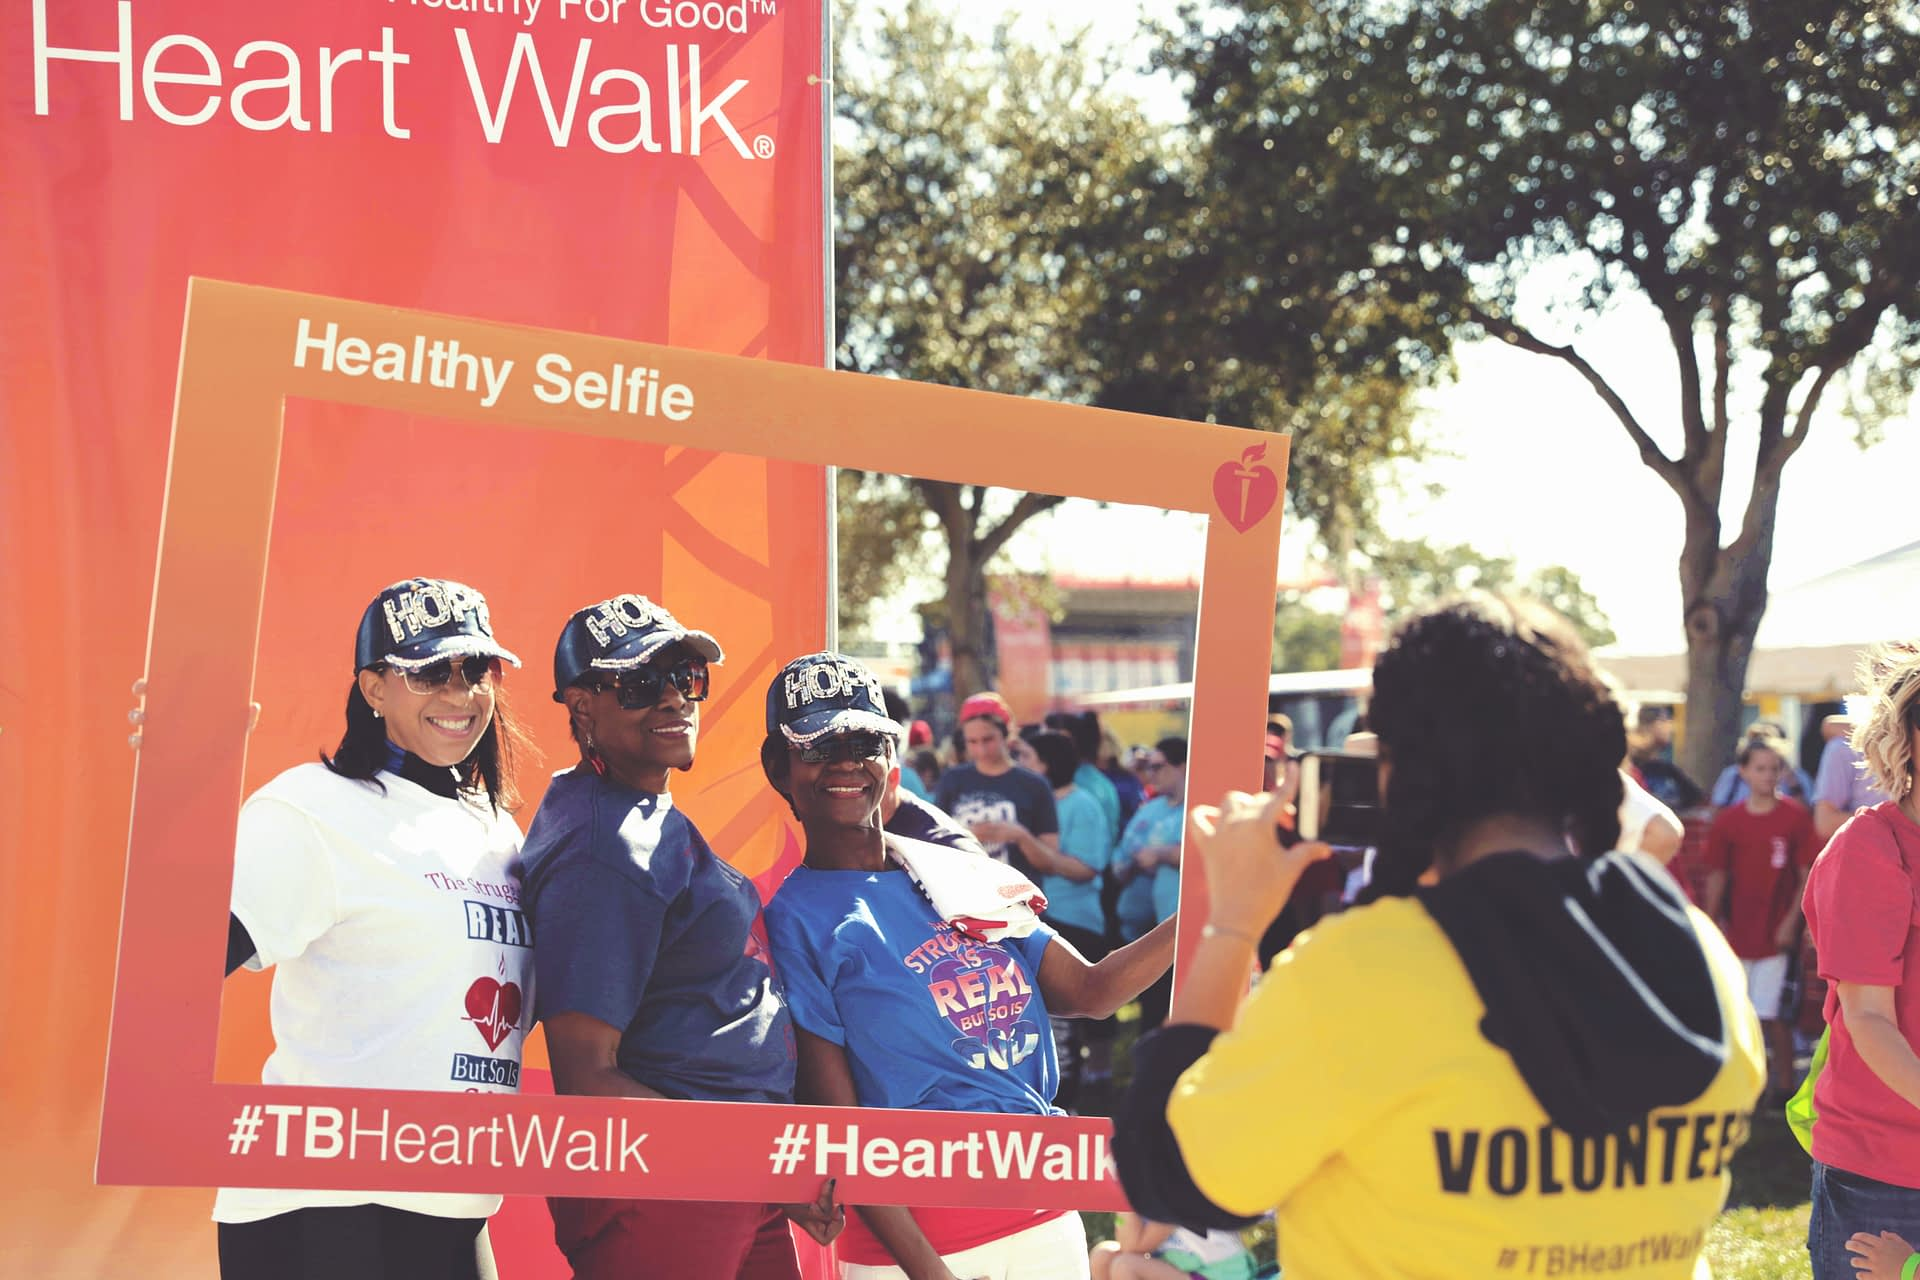 American Heart Associations Rebranded Heart Walk Experience Design - event photo booth